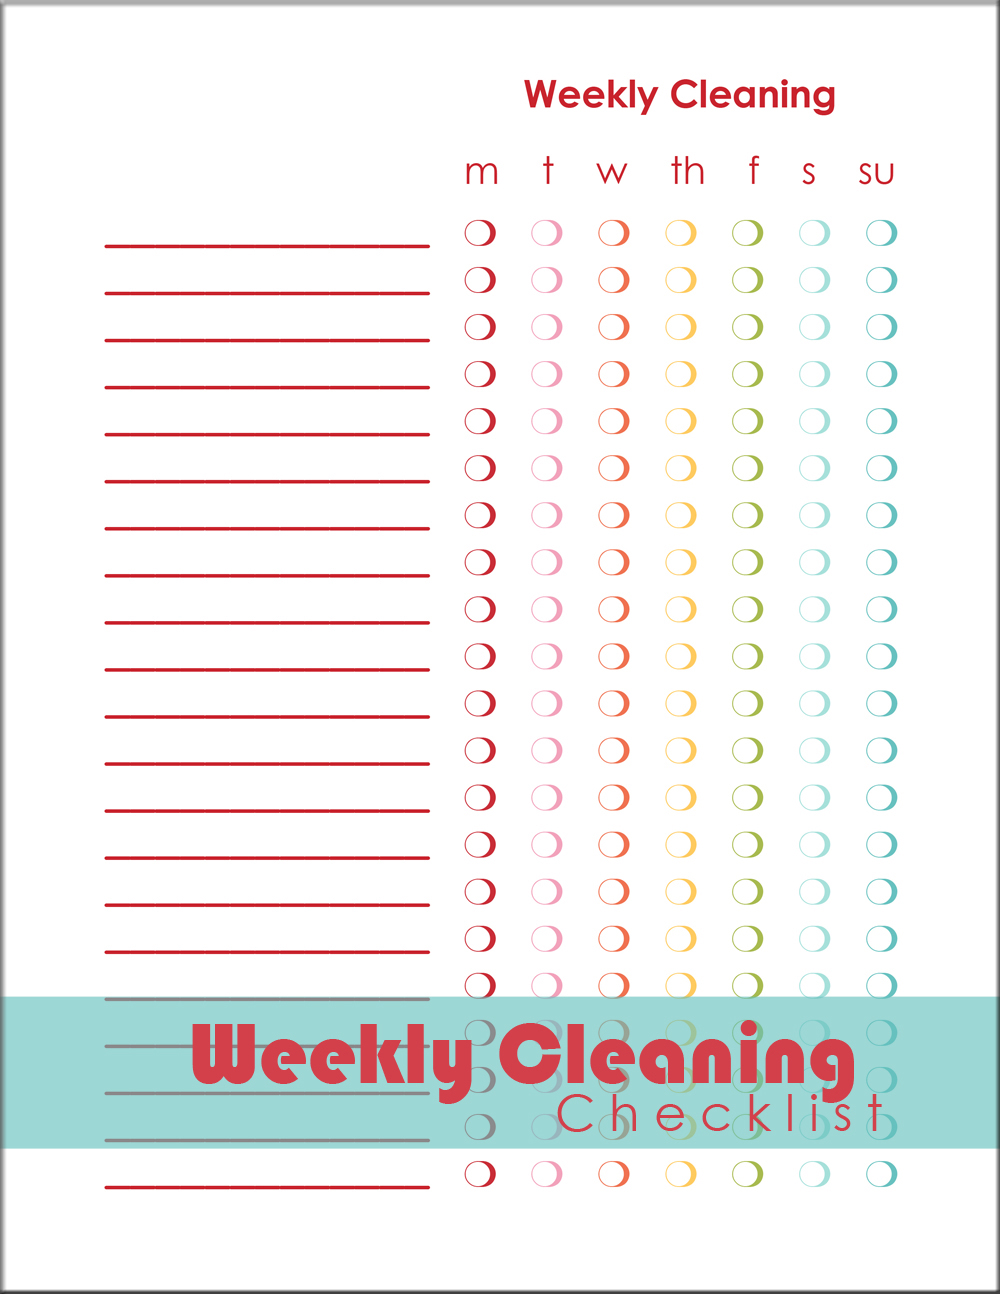 Weekly Cleaning Checklist – Weekly Checklist